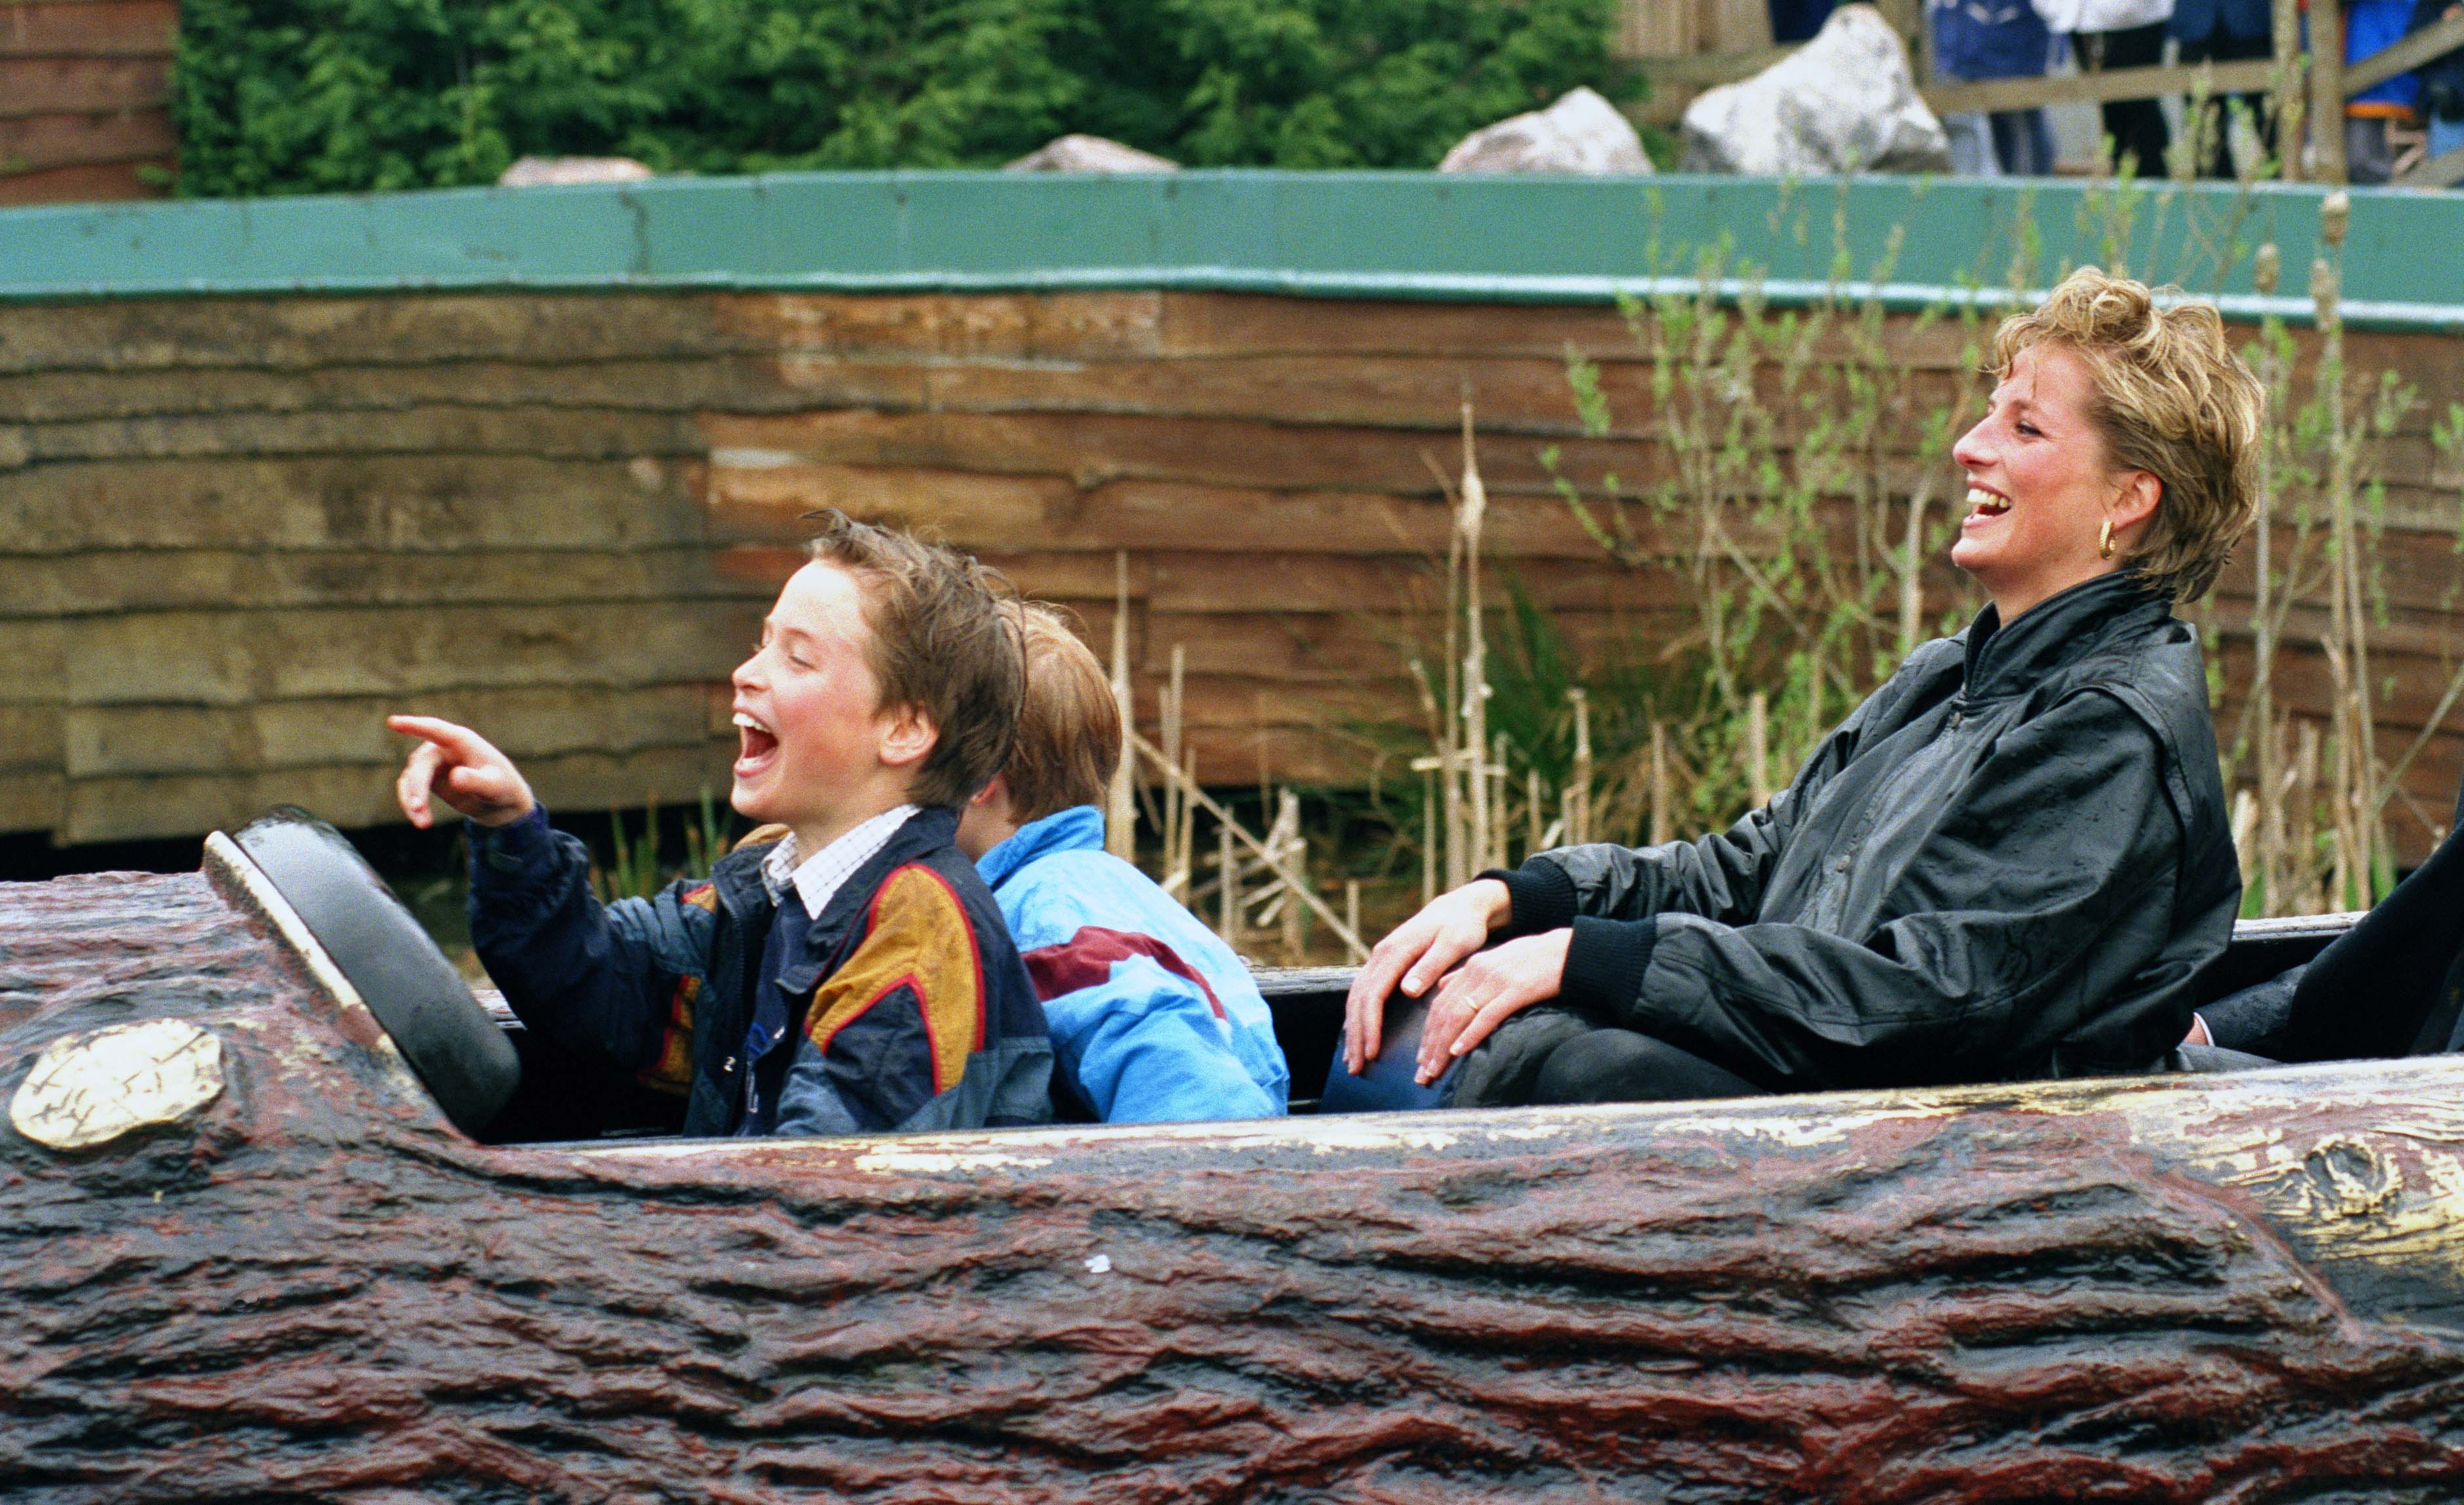 Princess Diana, Prince William, and Prince Harry at The 'Thorpe Park' Amusement Park | Photo: Getty Images